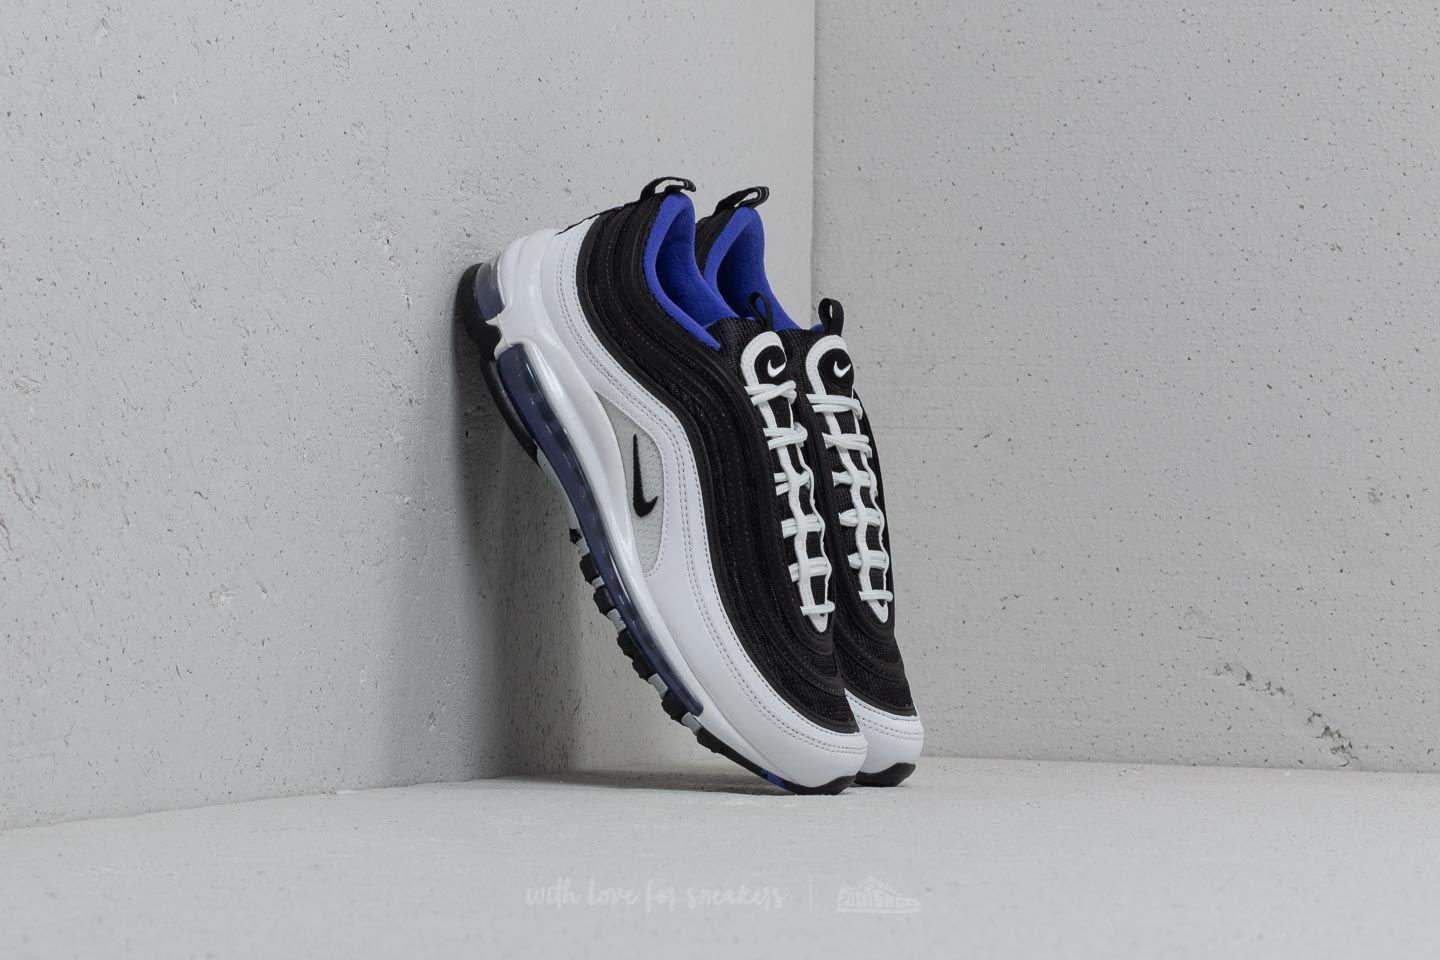 separation shoes e9c6f d87cf Lyst - Nike Air Max 97 White  Black-persian Violet in Black for Men